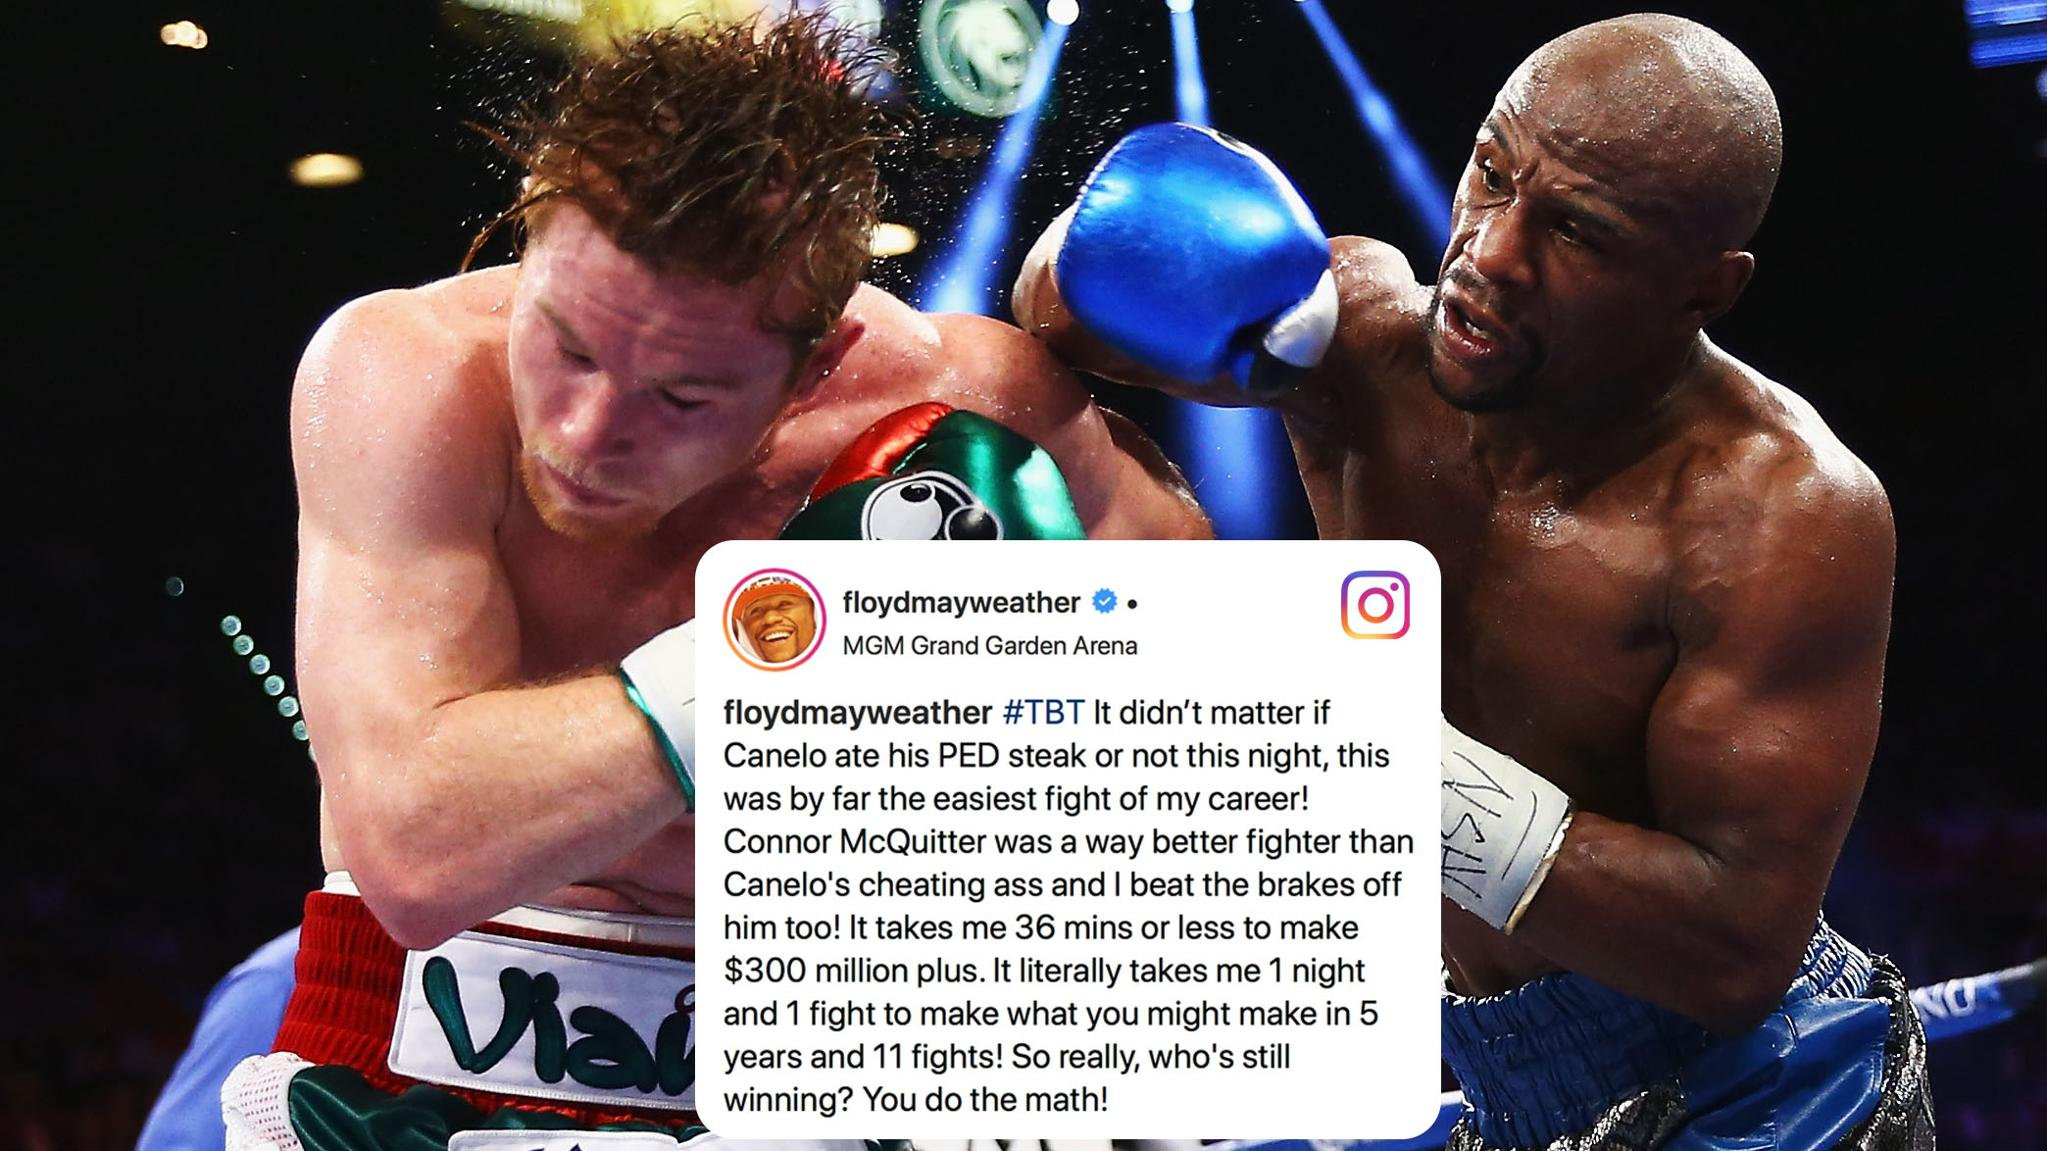 Floyd took jabs at Canelo and Conor in this week's #TBT. https://t.co/gUi1gBpL22